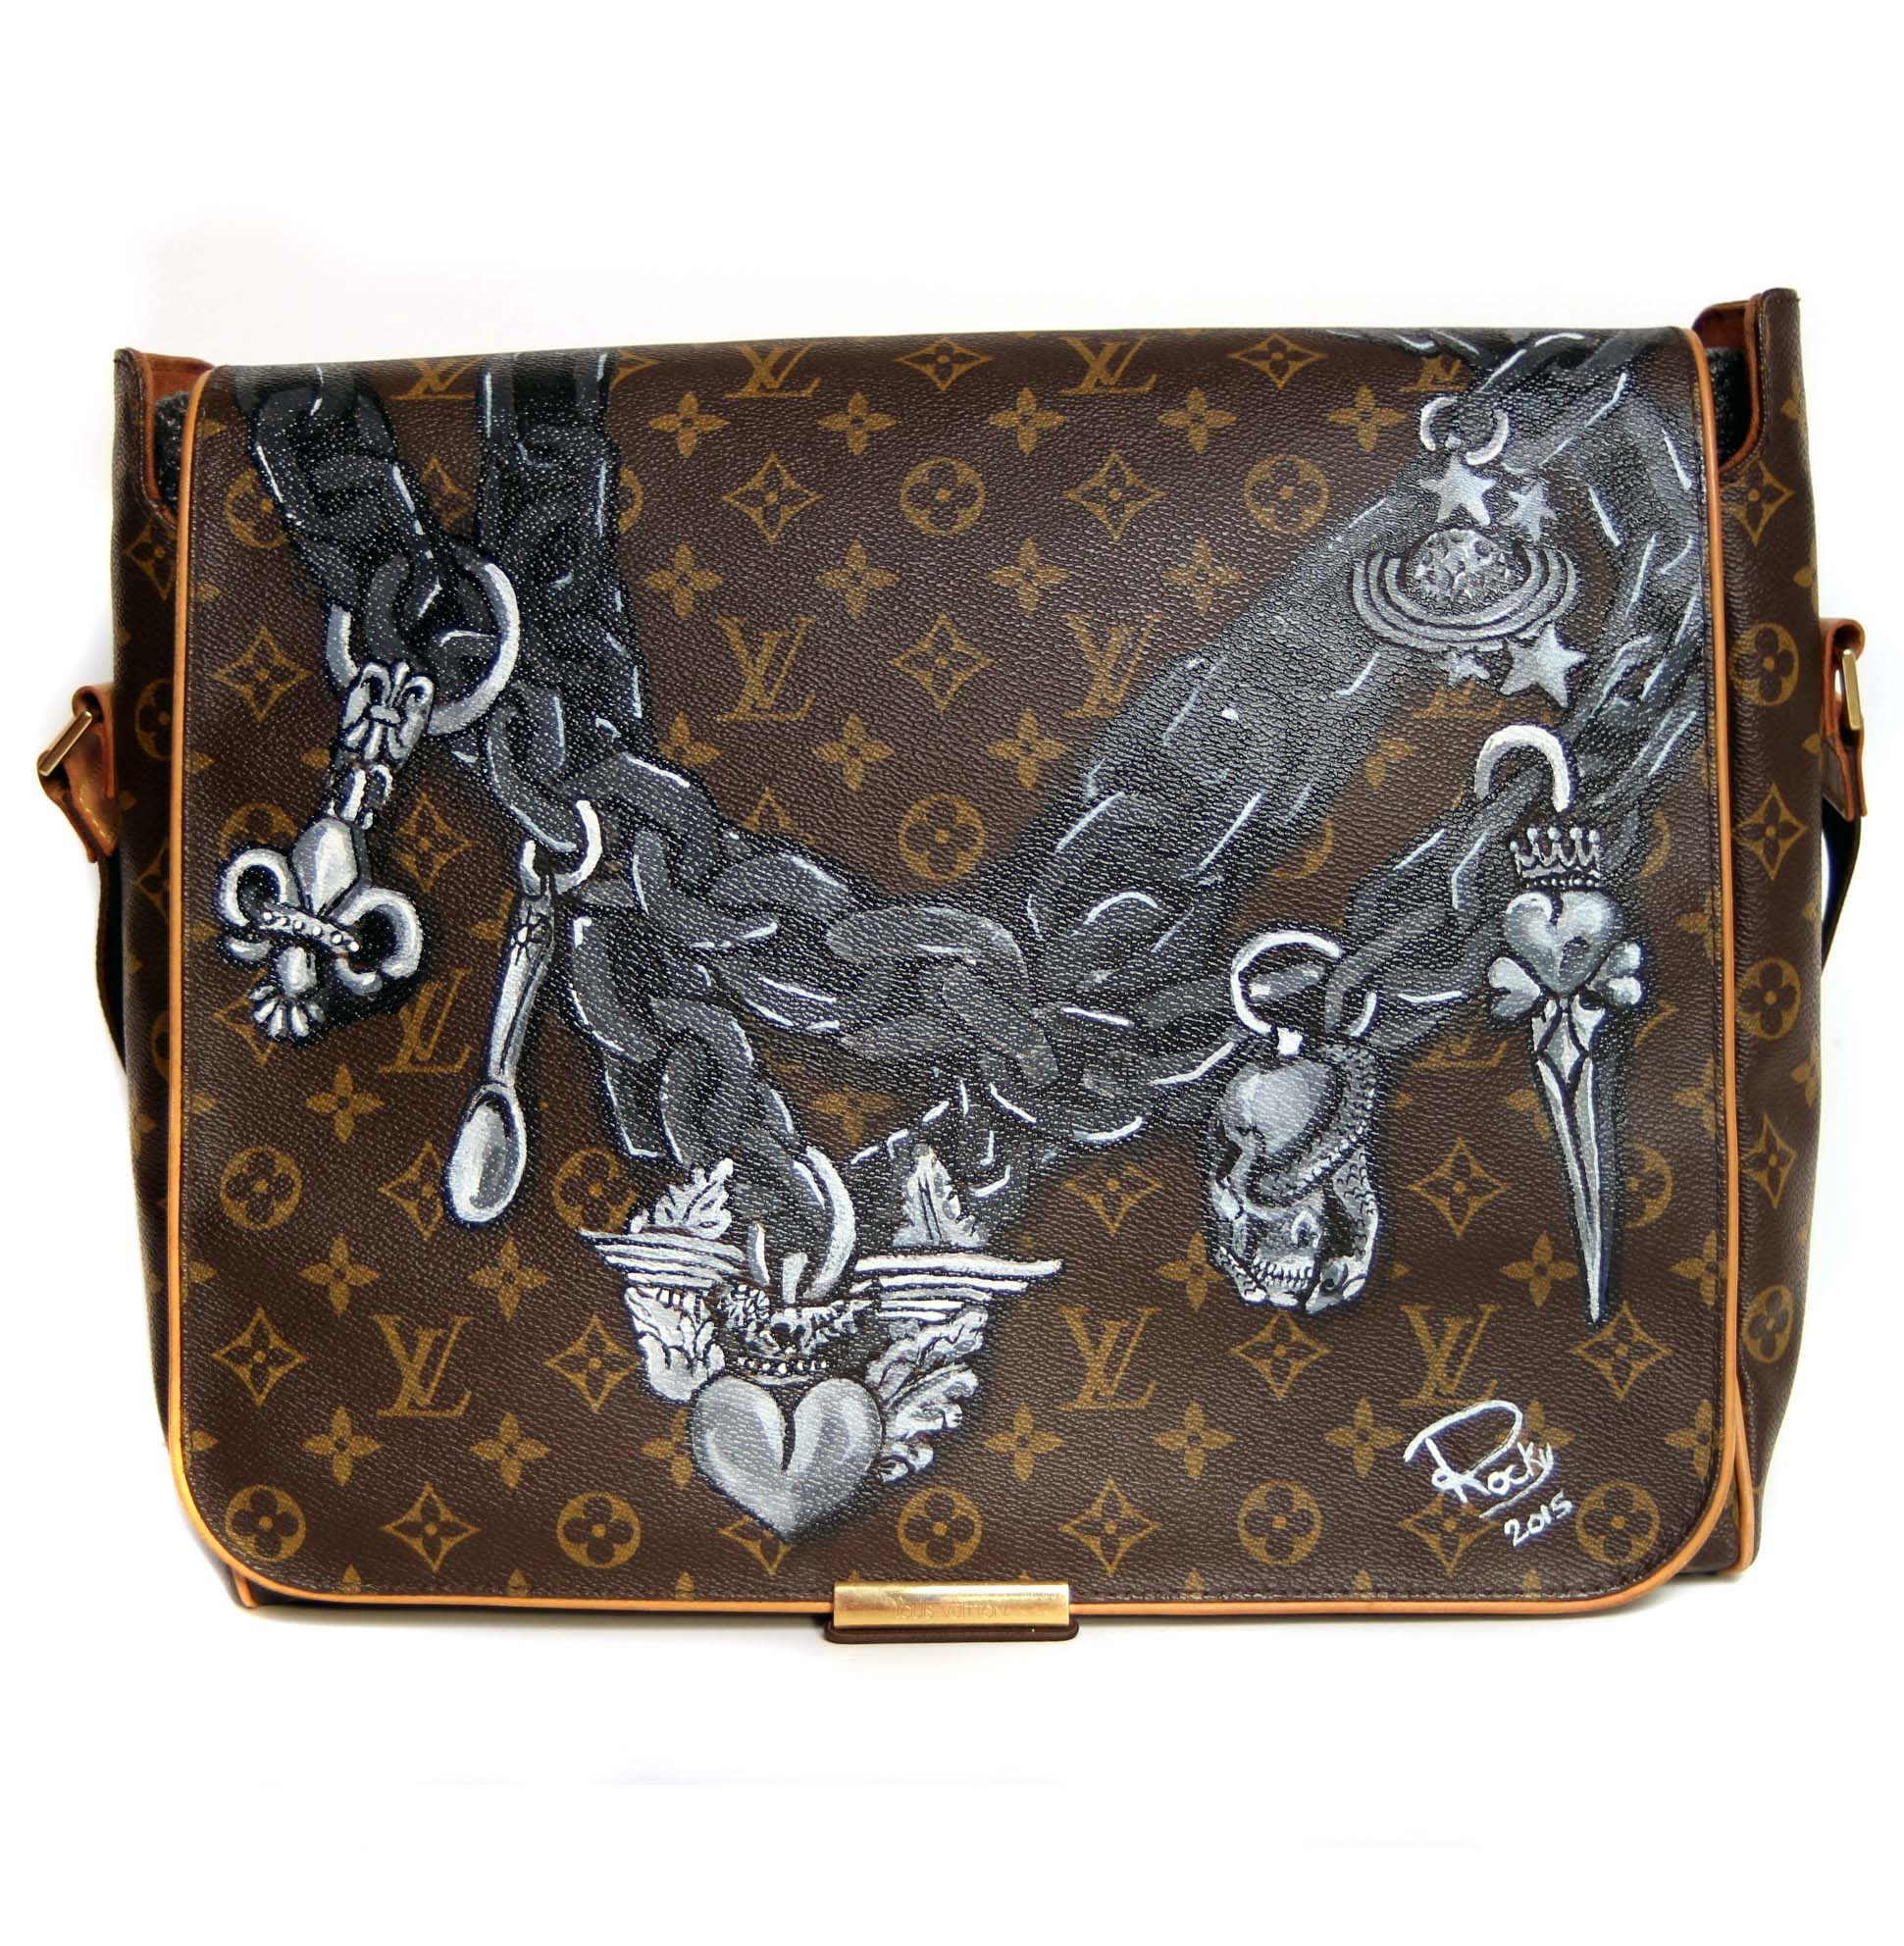 Louis Vuitton Oj Chain Satchel 02.jpg